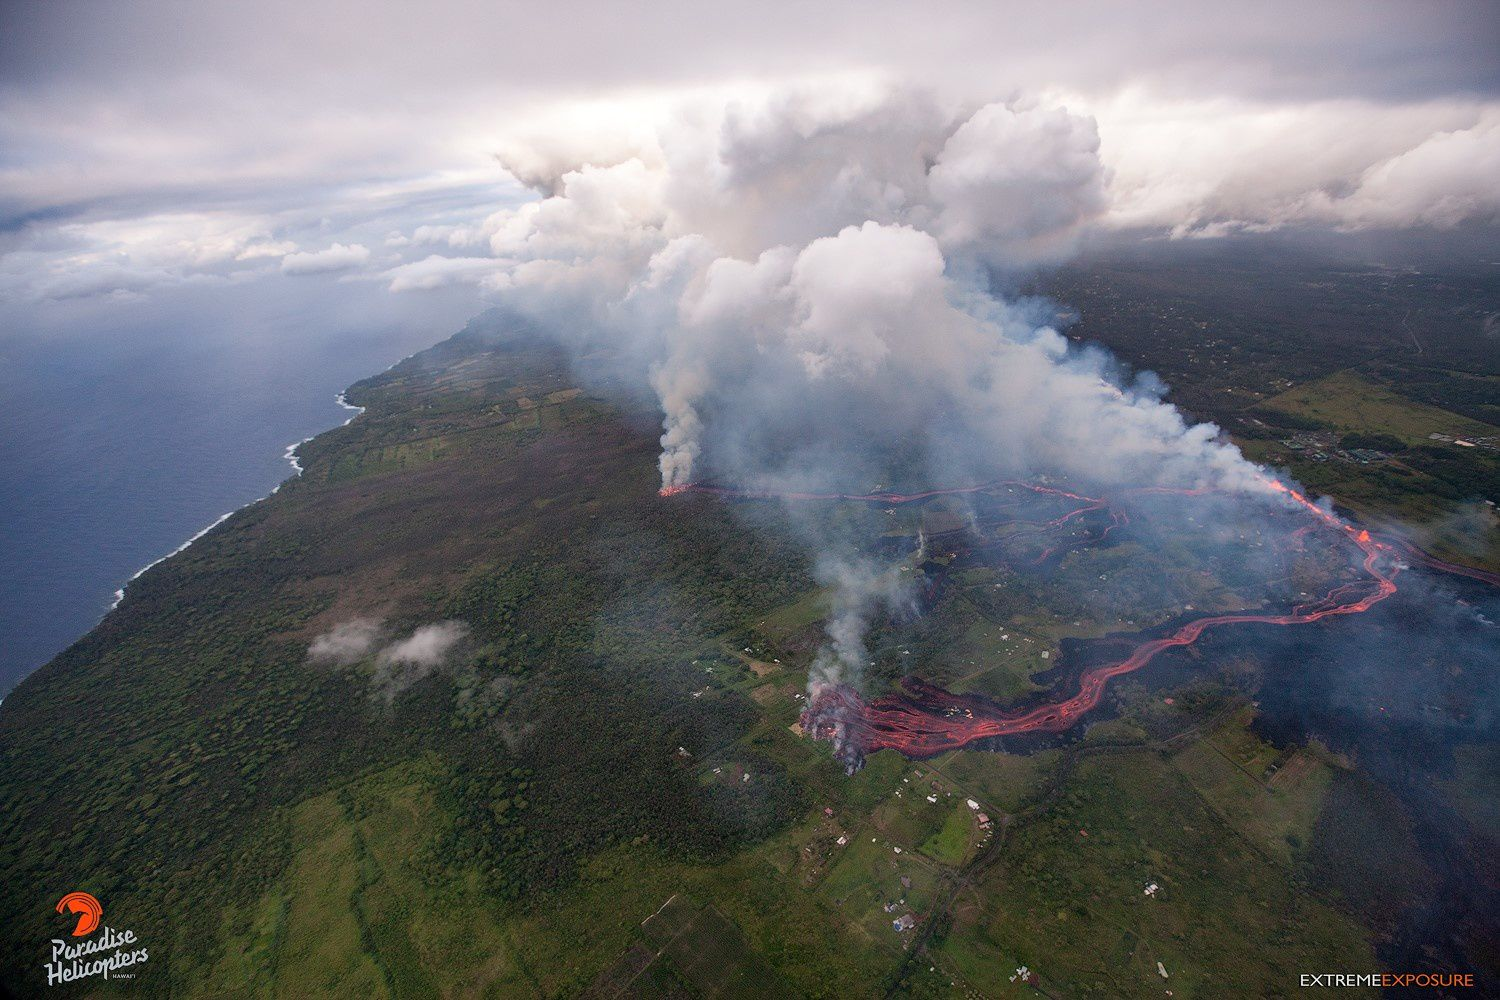 Kilauea East Rift Zone - lava heads to the ocean - photo by Bruce Omori / Paradise Helicopters 18May 2018 / 5:45 am - Kilauea's east rift zone overflight